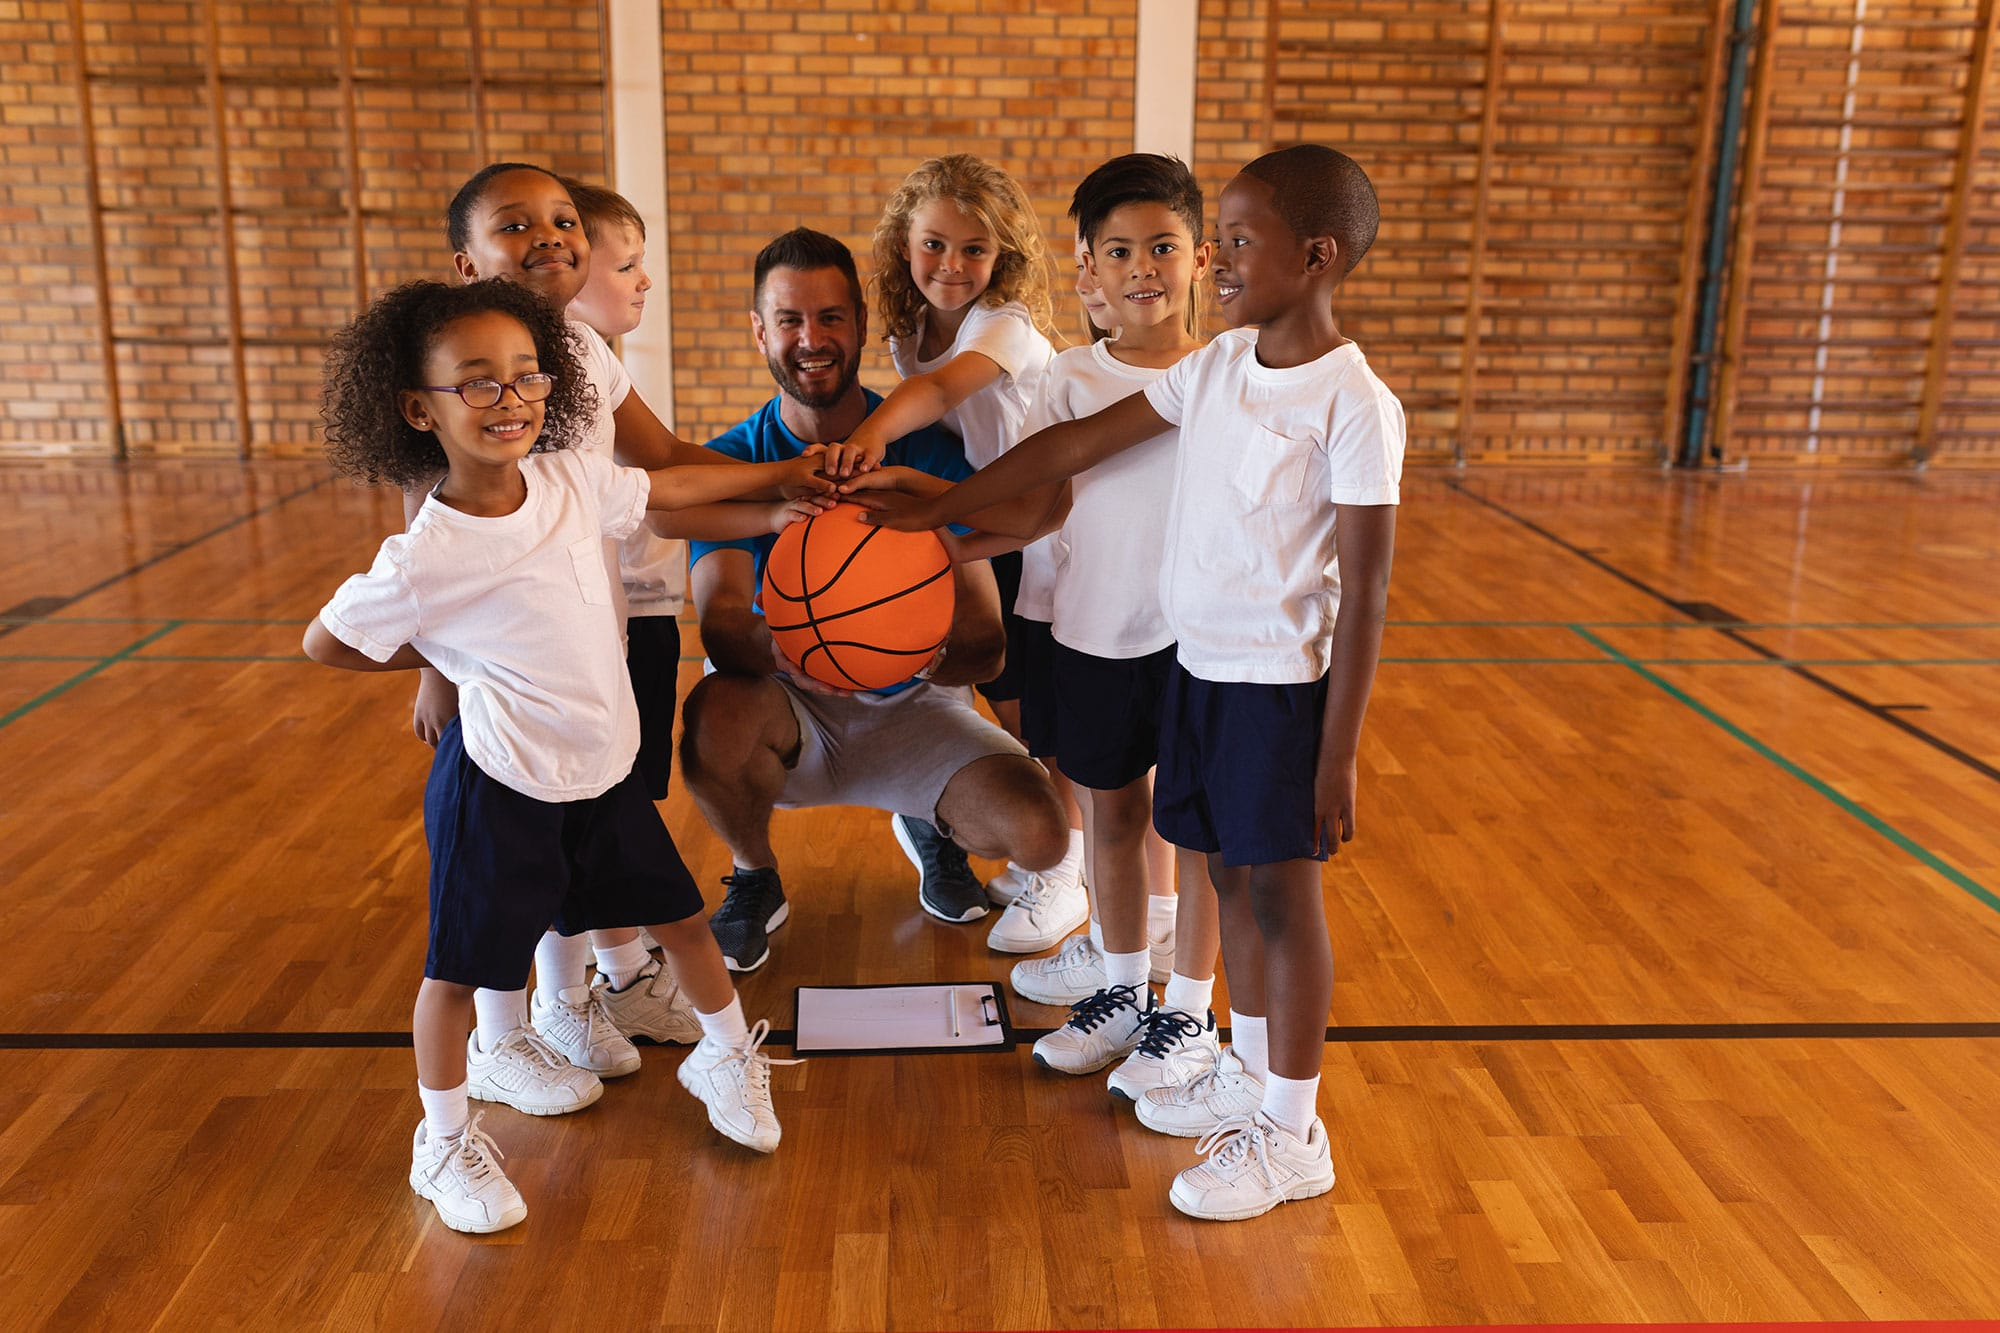 ukactive welcomes £390m investment from Government to support vulnerable children and young people over school holidays